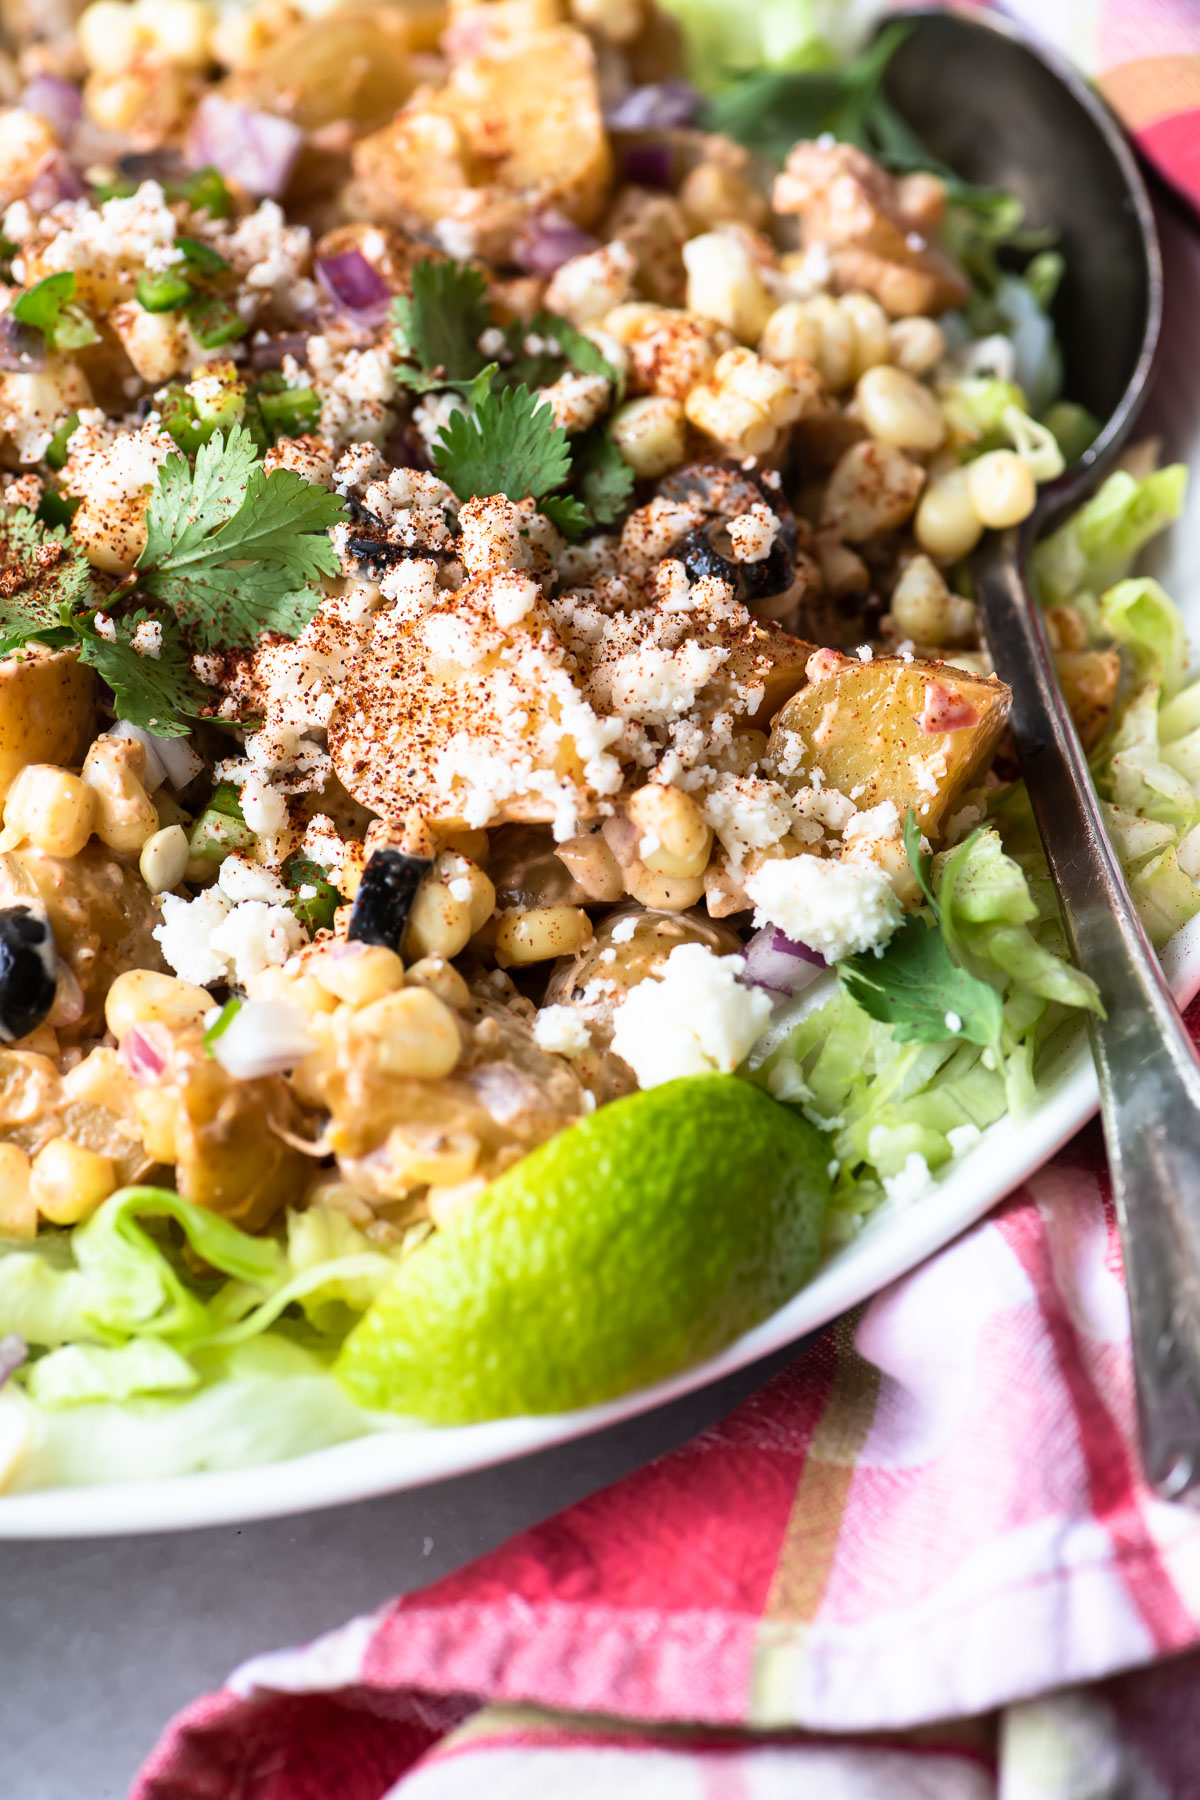 Mexican Street Corn Potato Salad with red plaid napkin